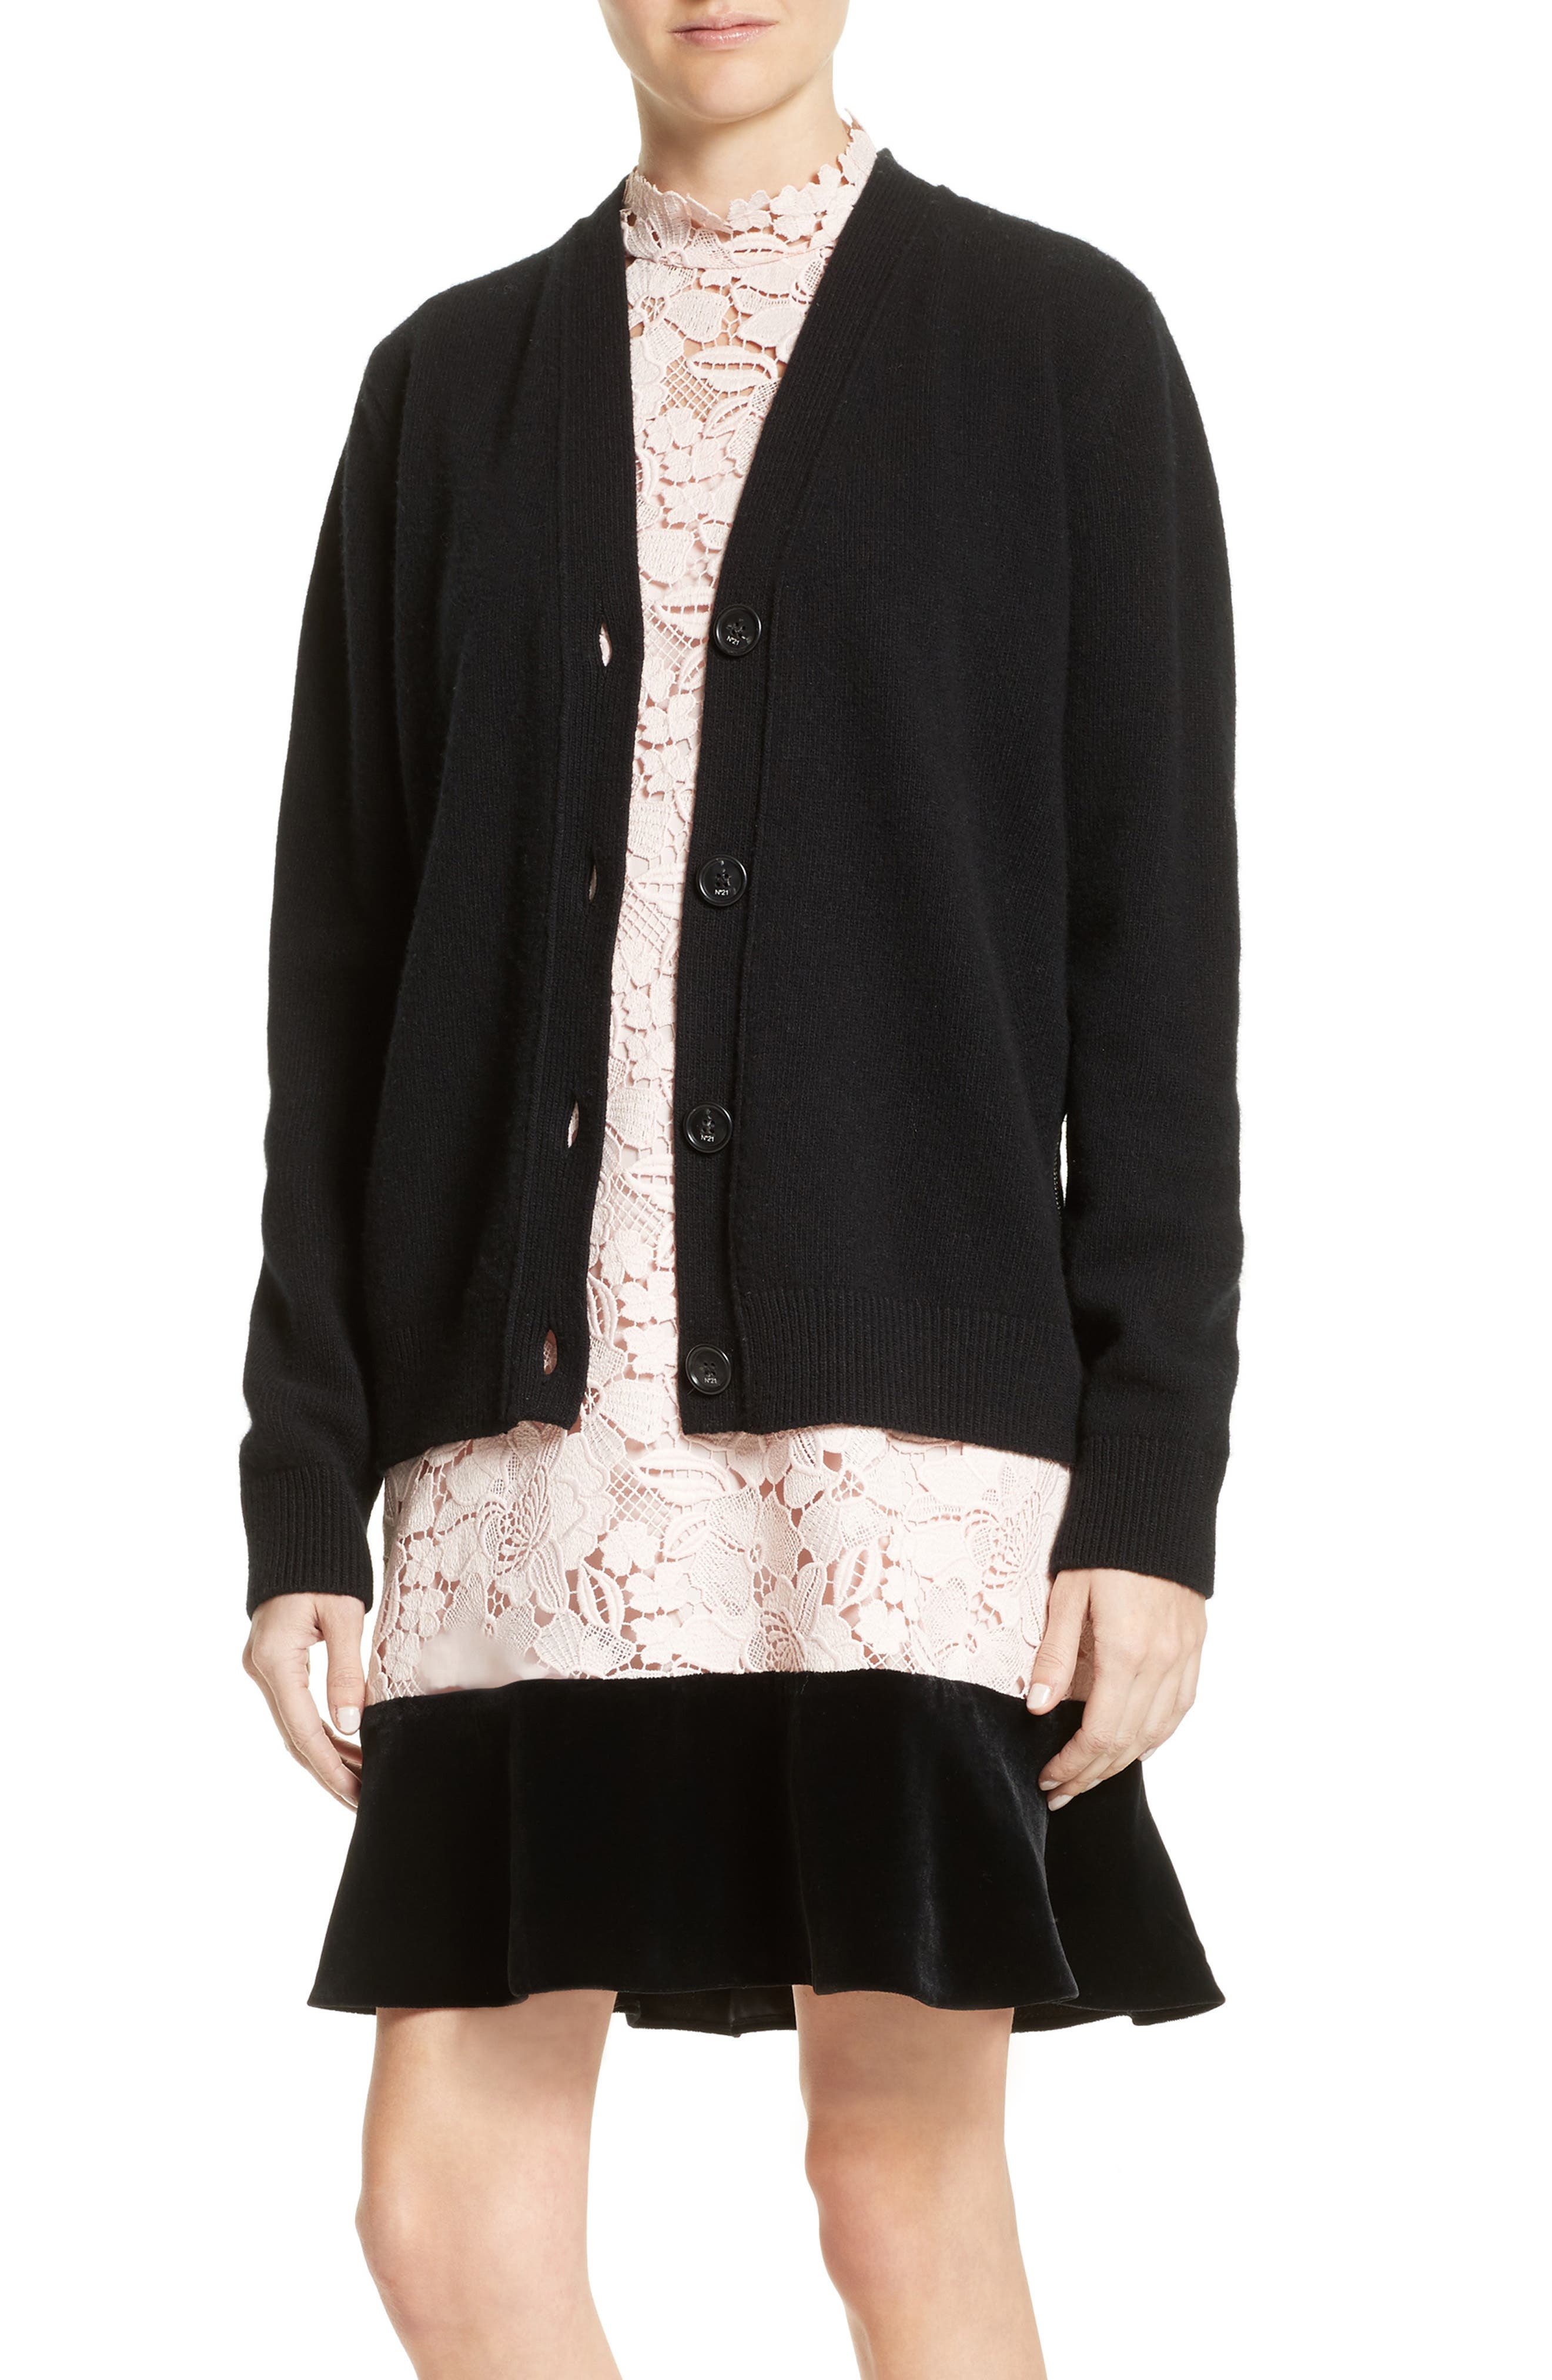 N°21 Lace Back Wool Blend Cardigan